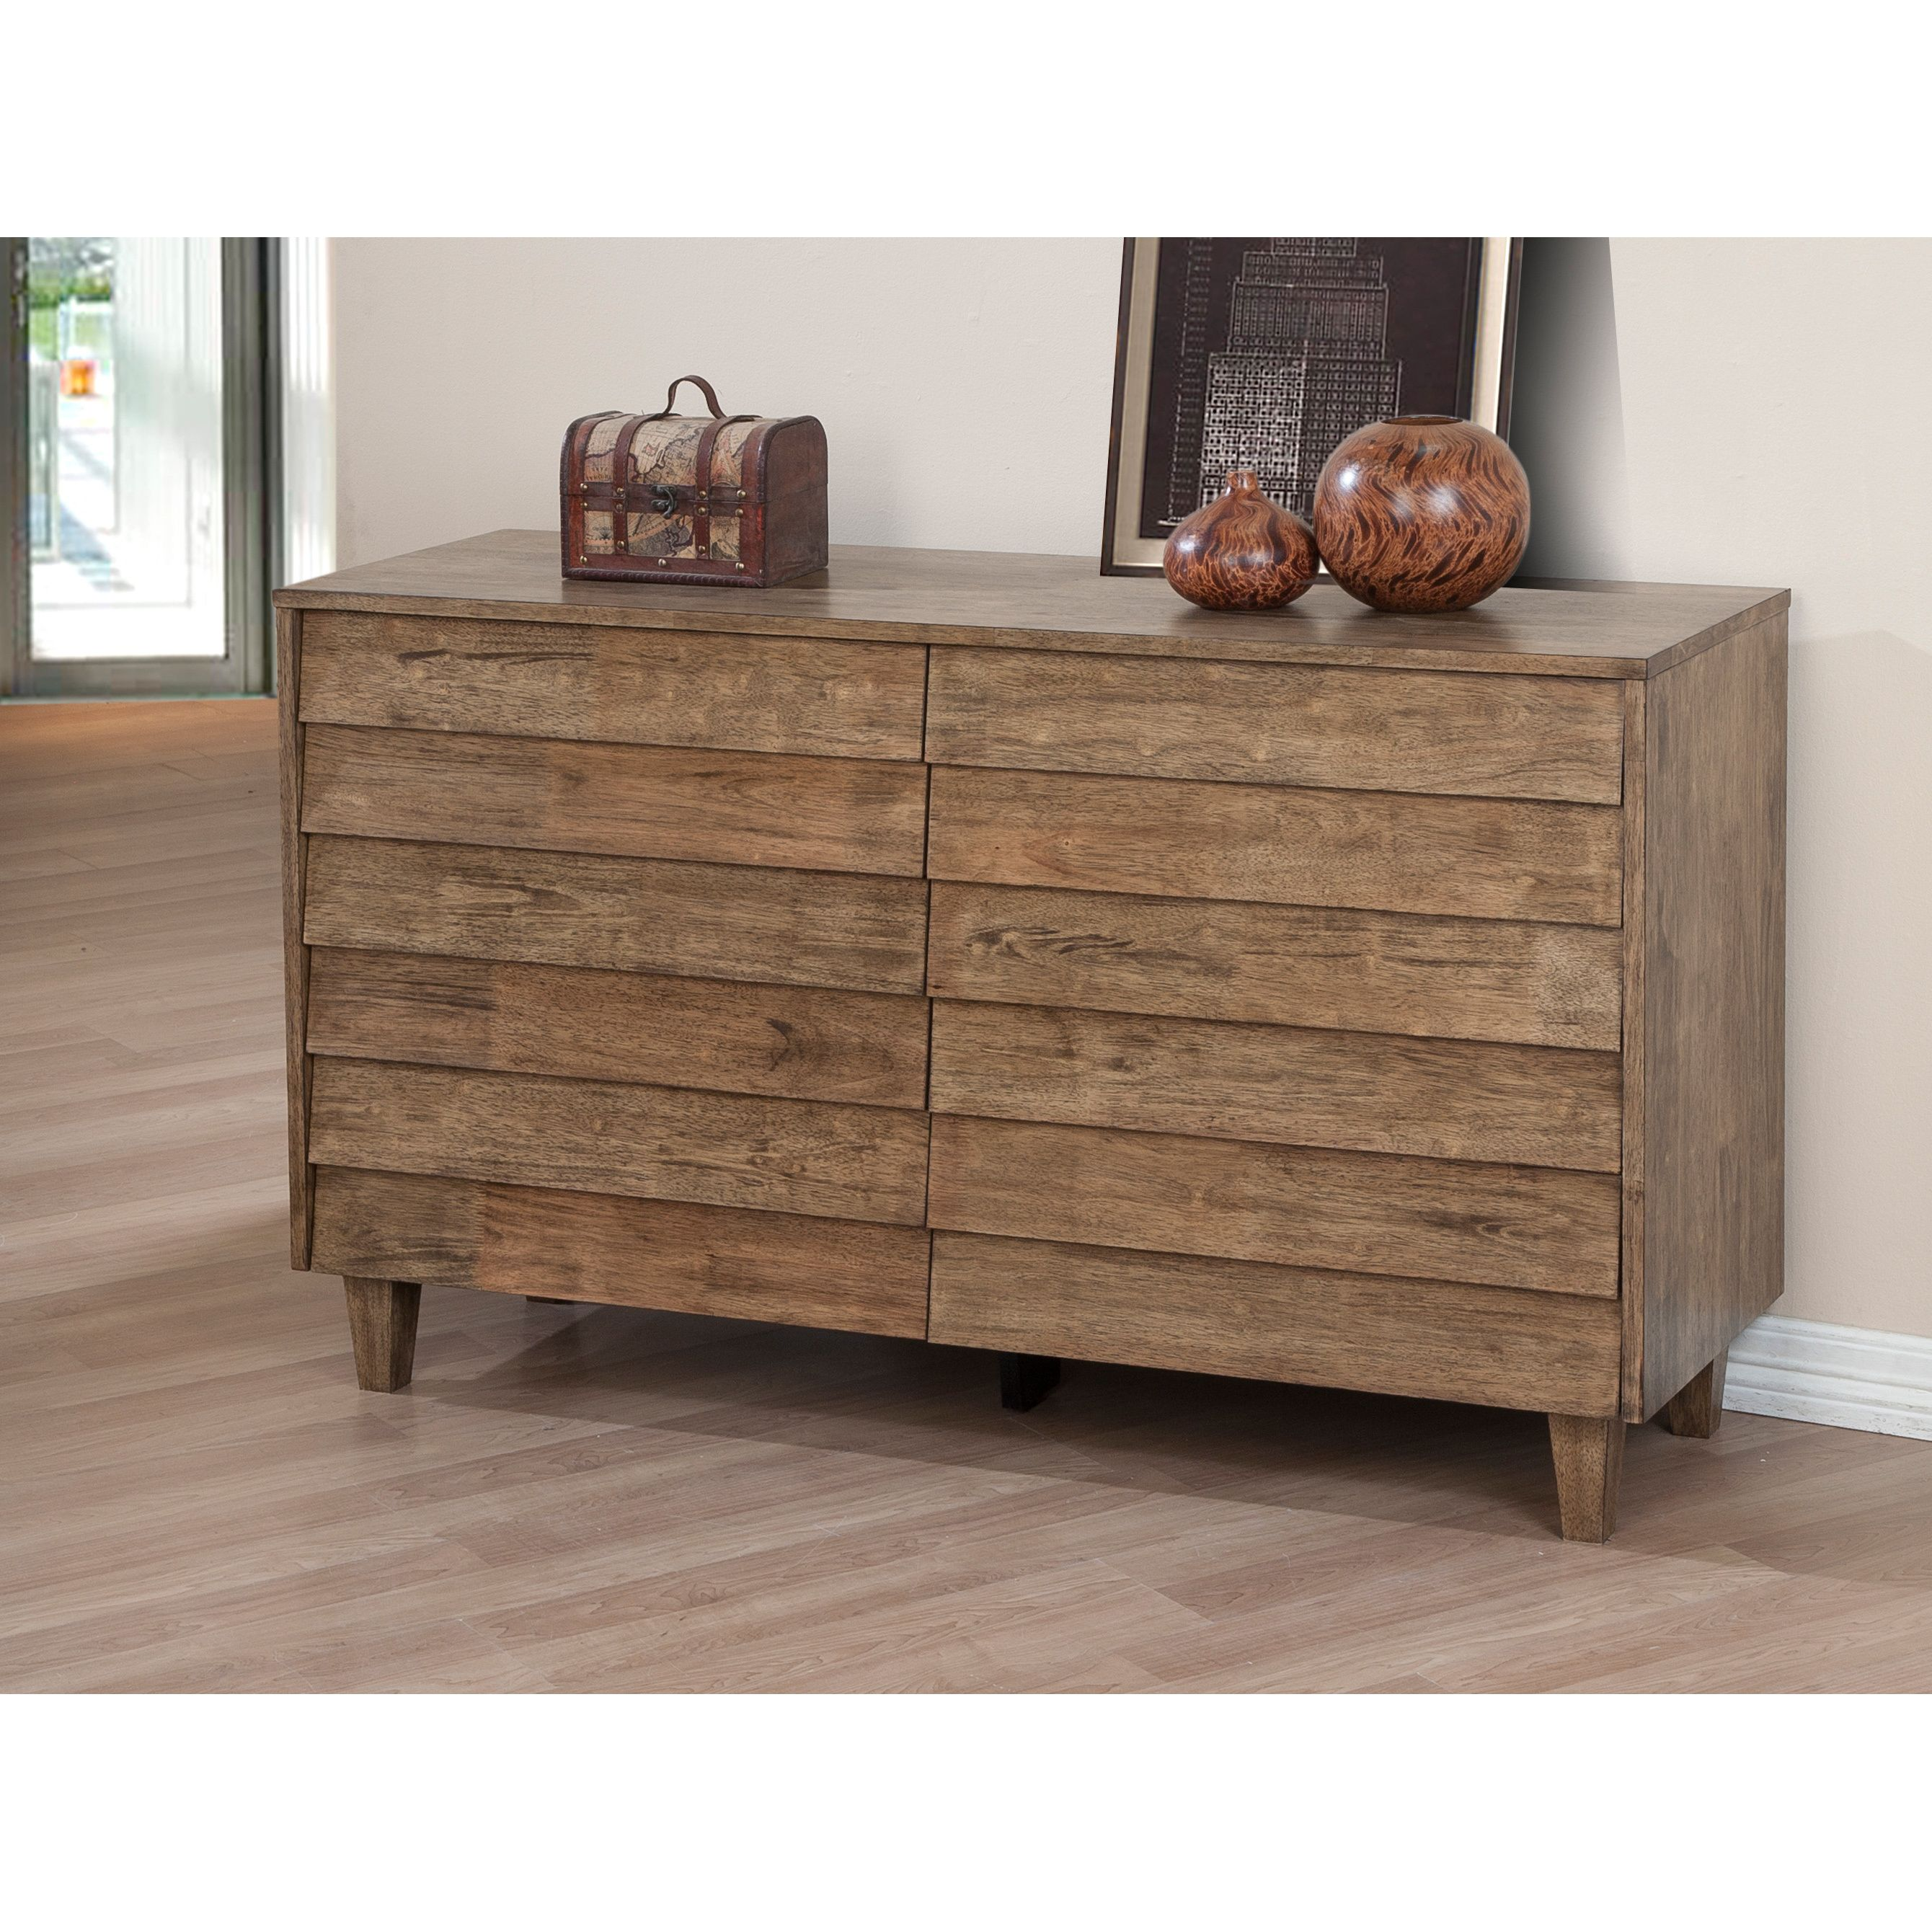 Venetian drawer dresser by i love living austere refinement and an